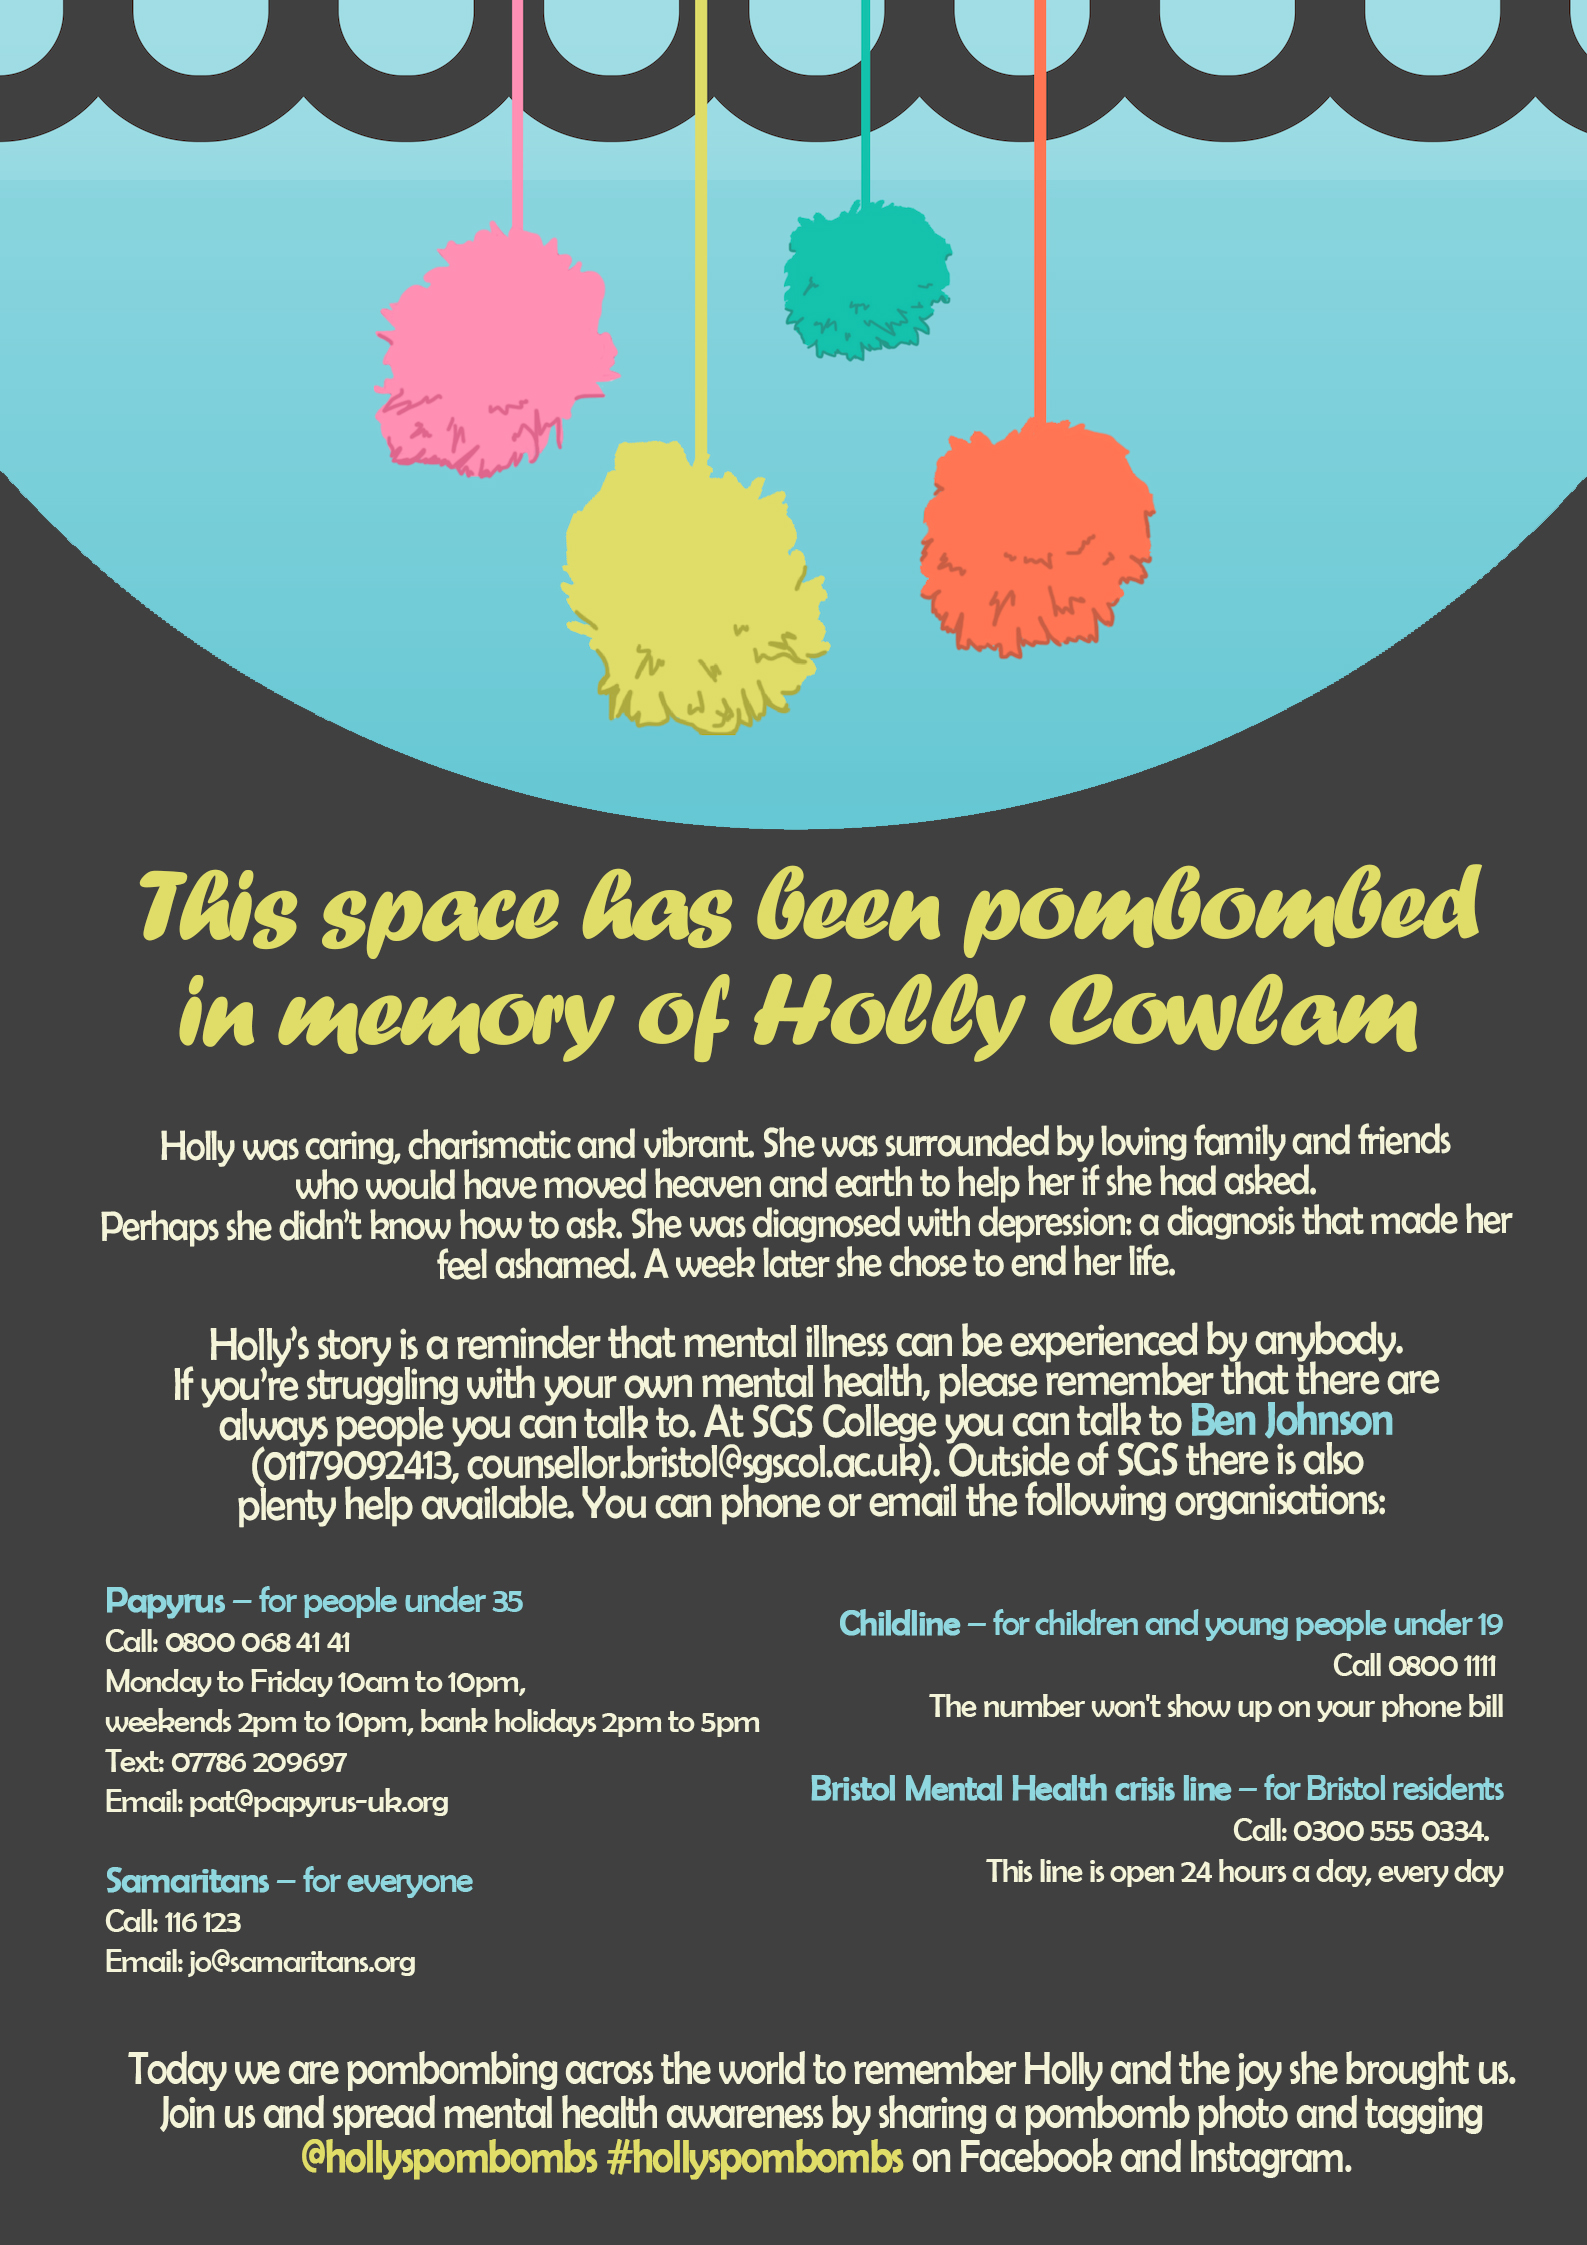 [Image Description: Light blue and navy informational poster about Holly's PomBombs with pink, yellow, green, and orange pompoms. The information contained can be read at the official Holly's PomBombs website, and the contact information on the poster can be read below.]